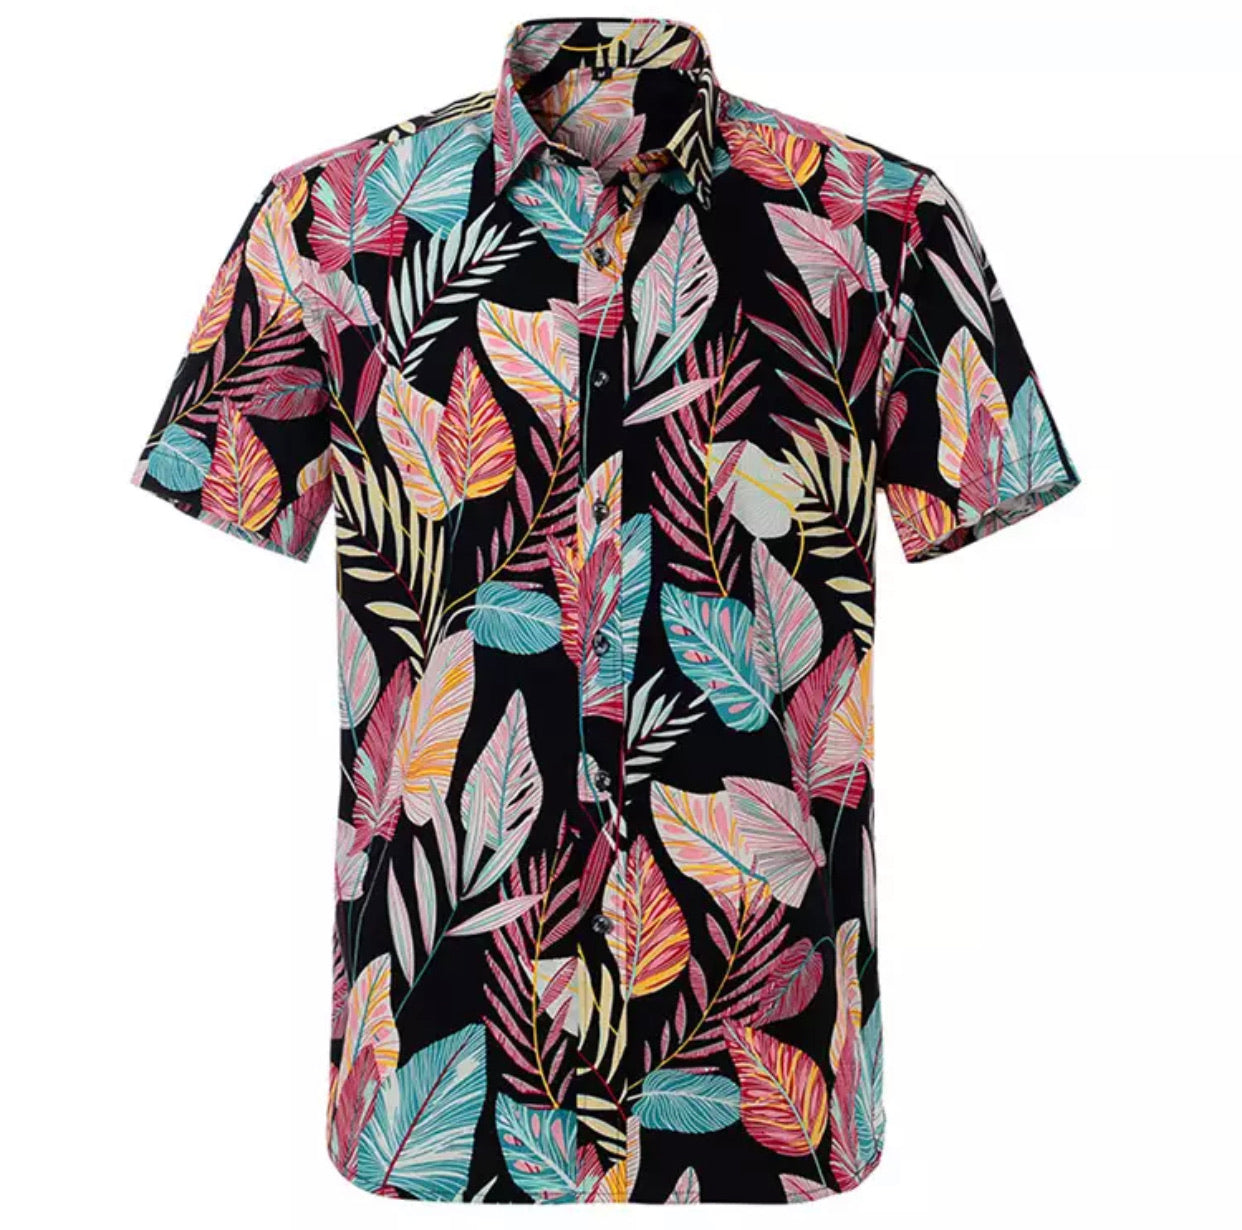 The Dark Leaf Shirt - Up to Size XXXL